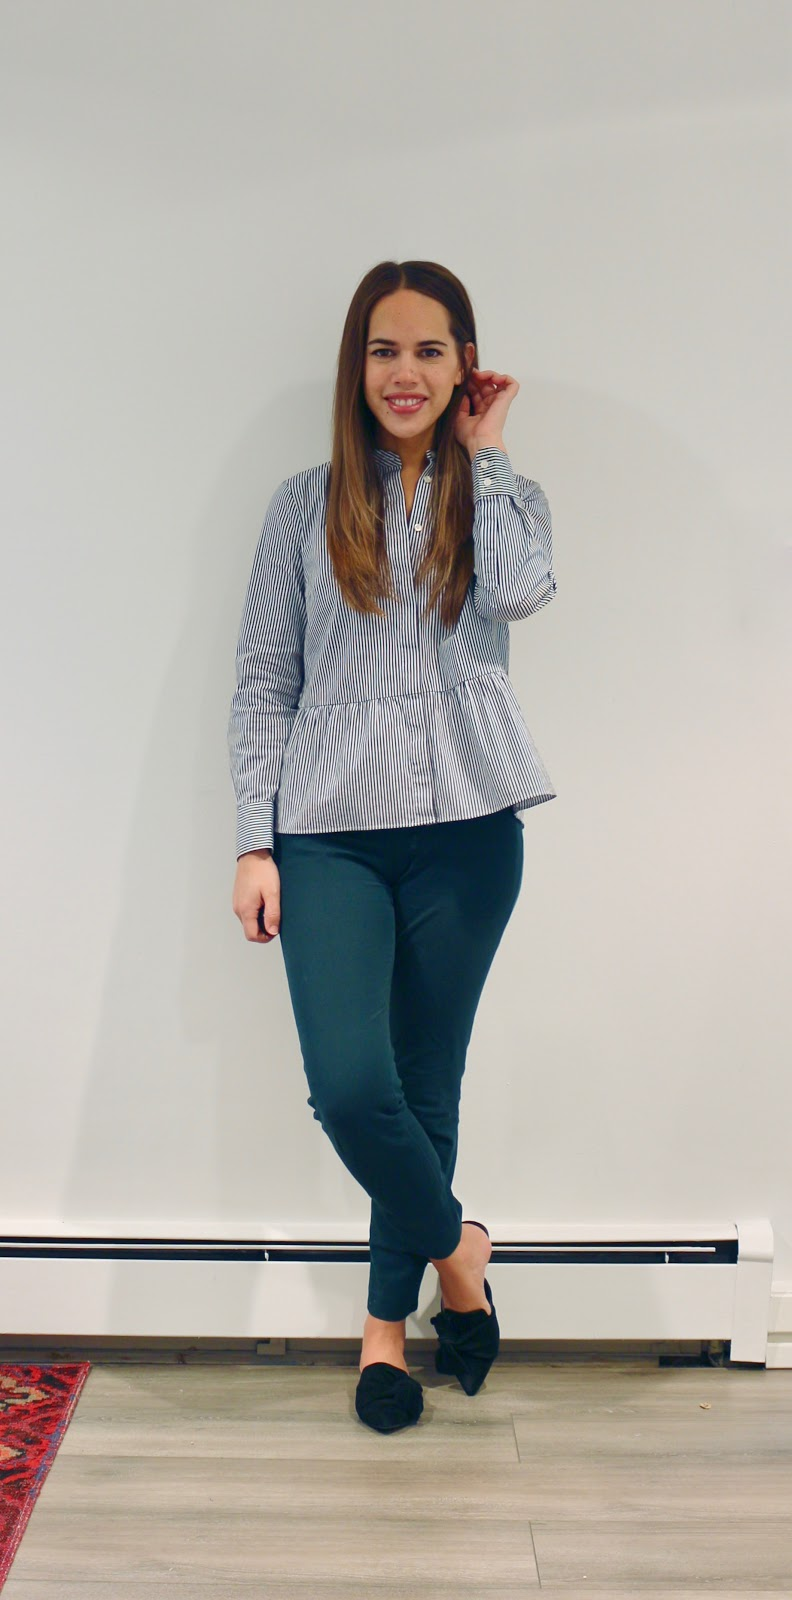 Jules in Flats - J.Crew Striped Peplum Button Up (Business Casual Fall Workwear on a Budget)